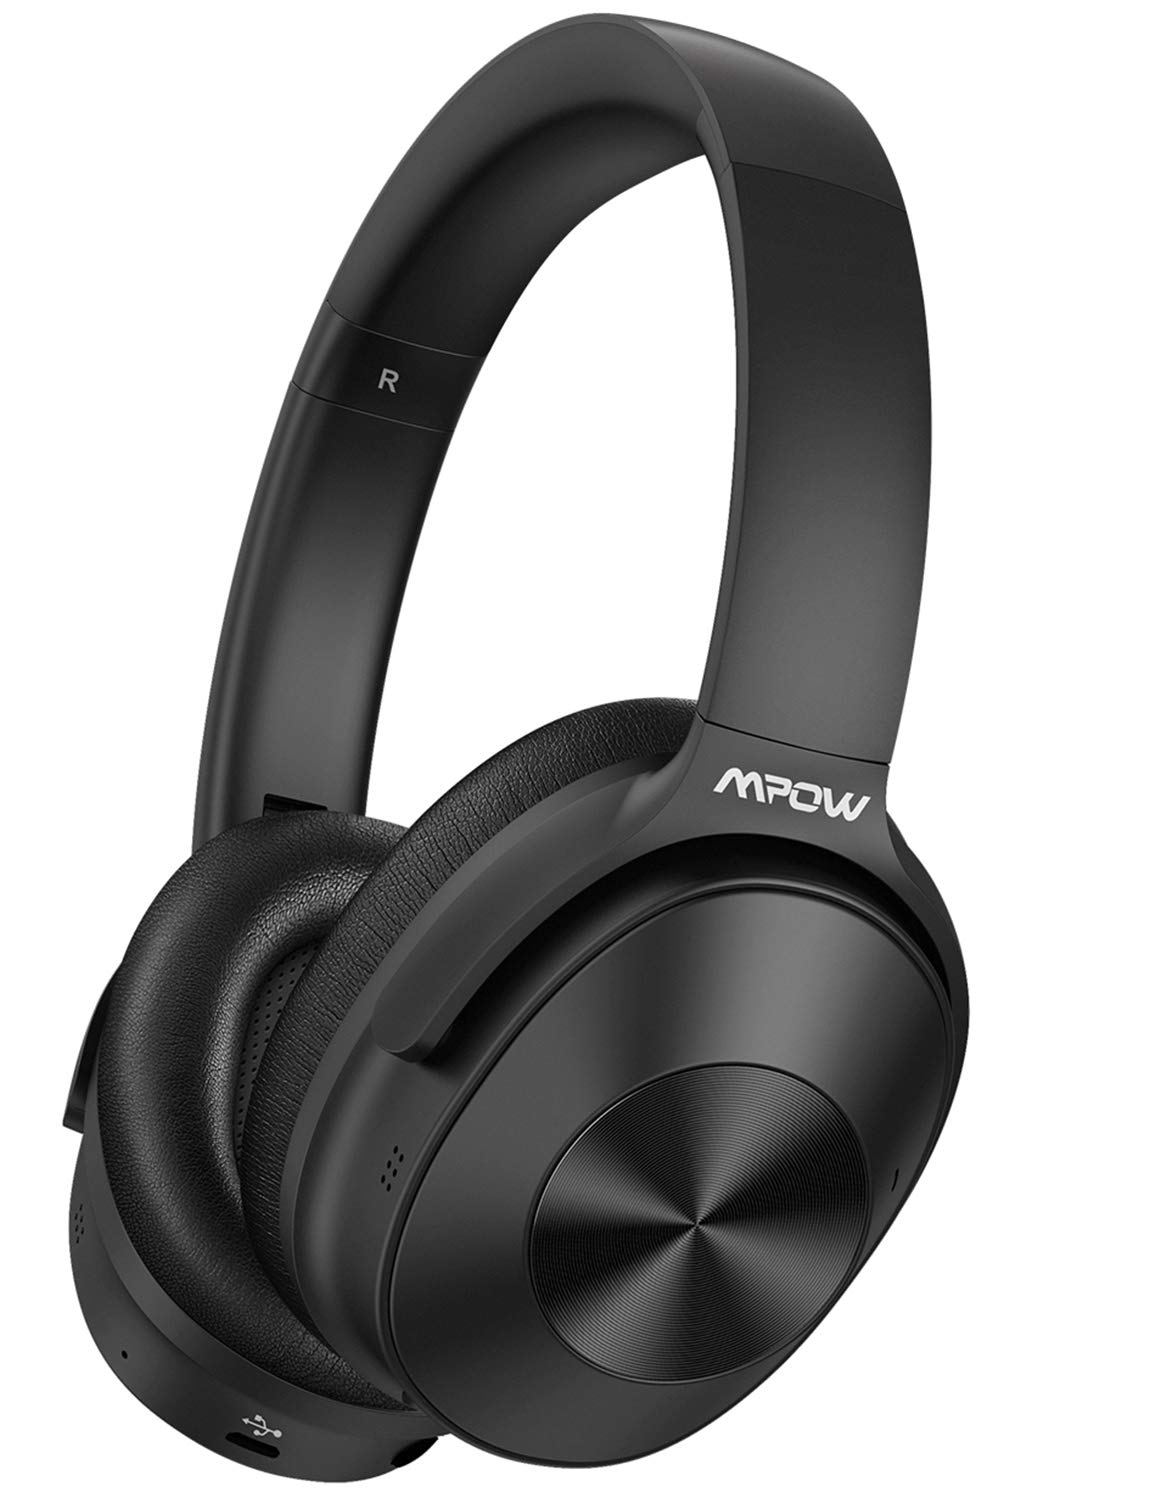 Mpow Hybrid Active Noise Cancelling Headphones